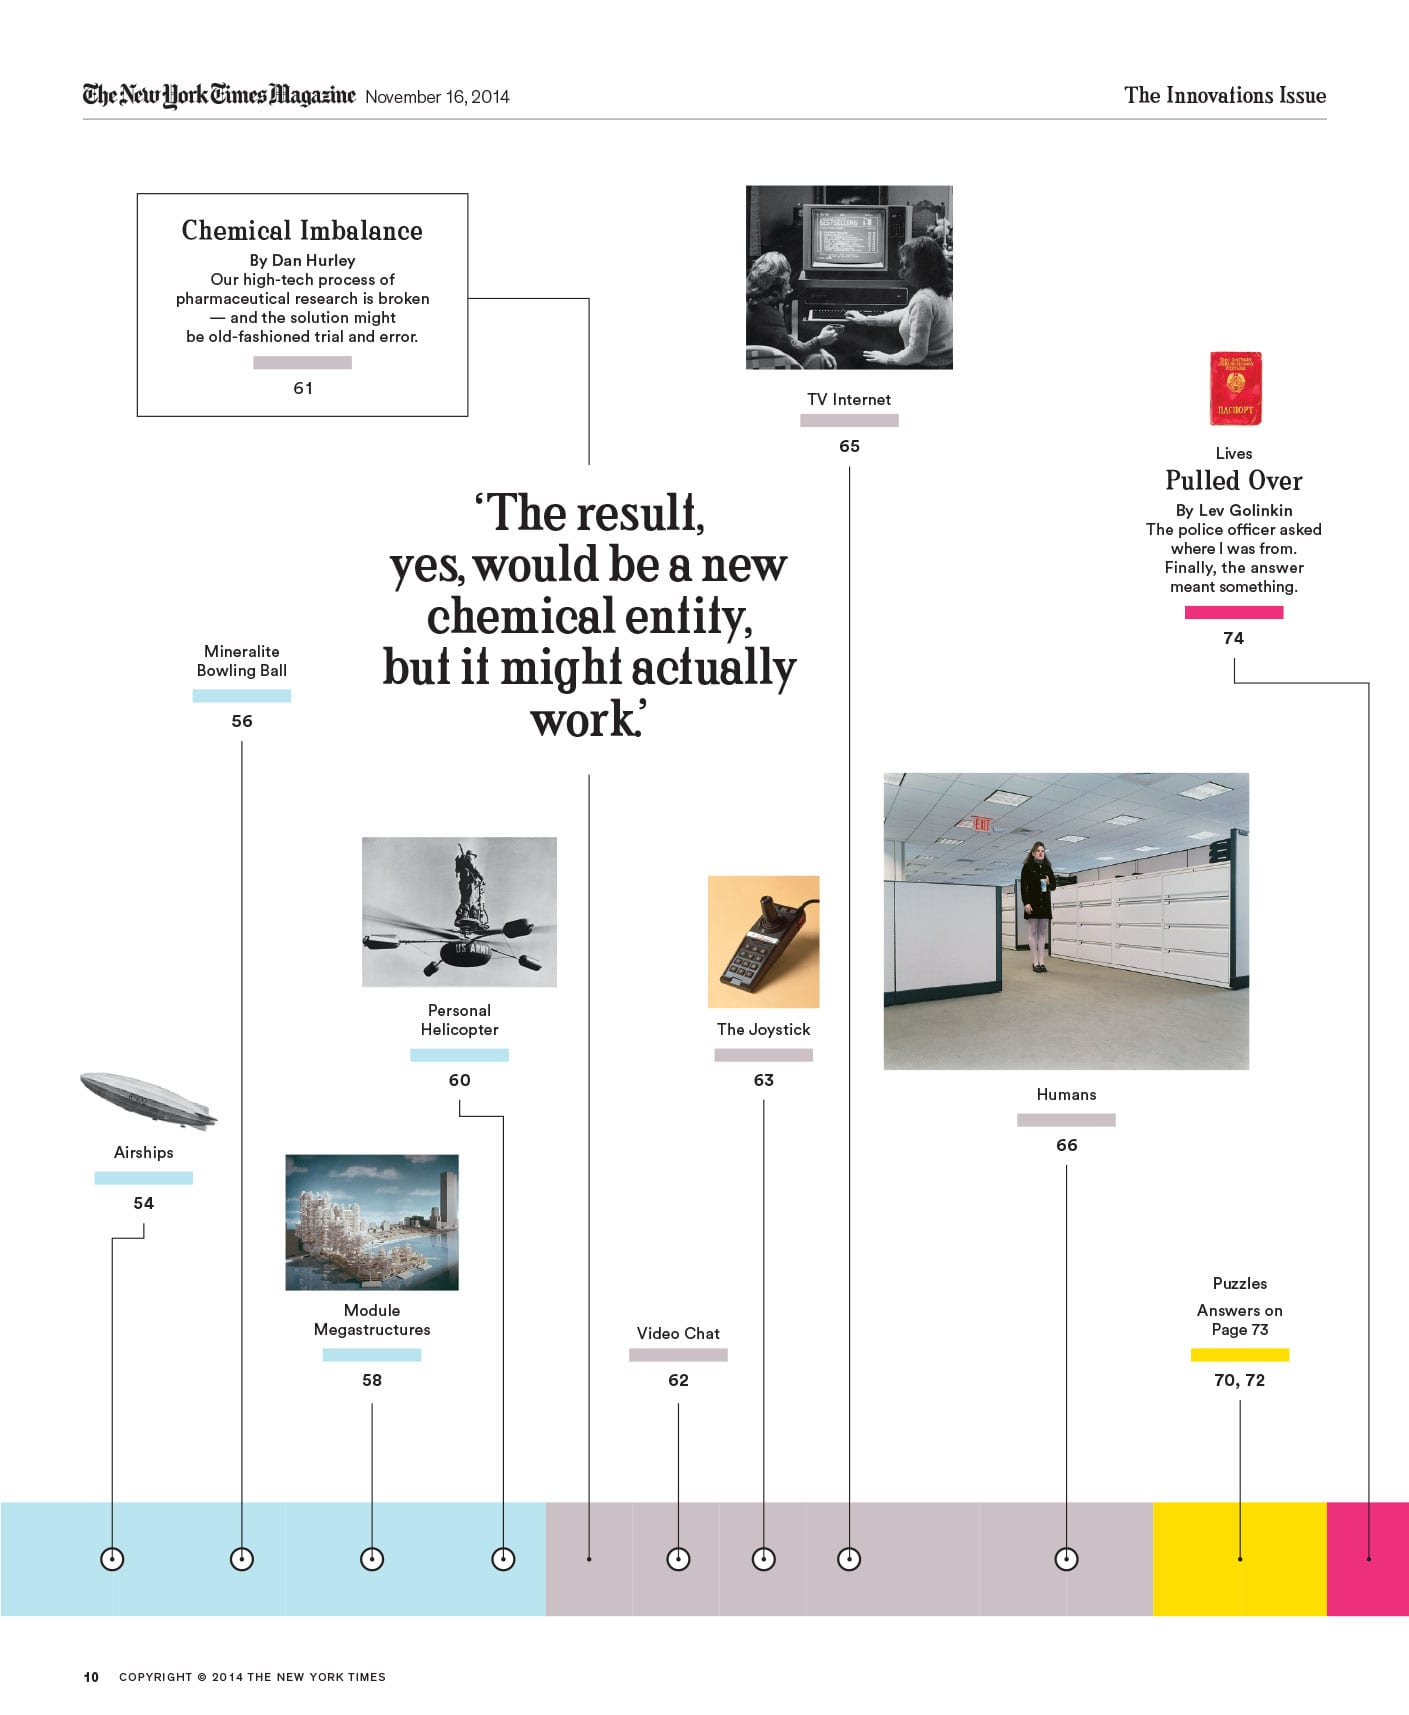 The NYTimes Magazine Innovations Issue